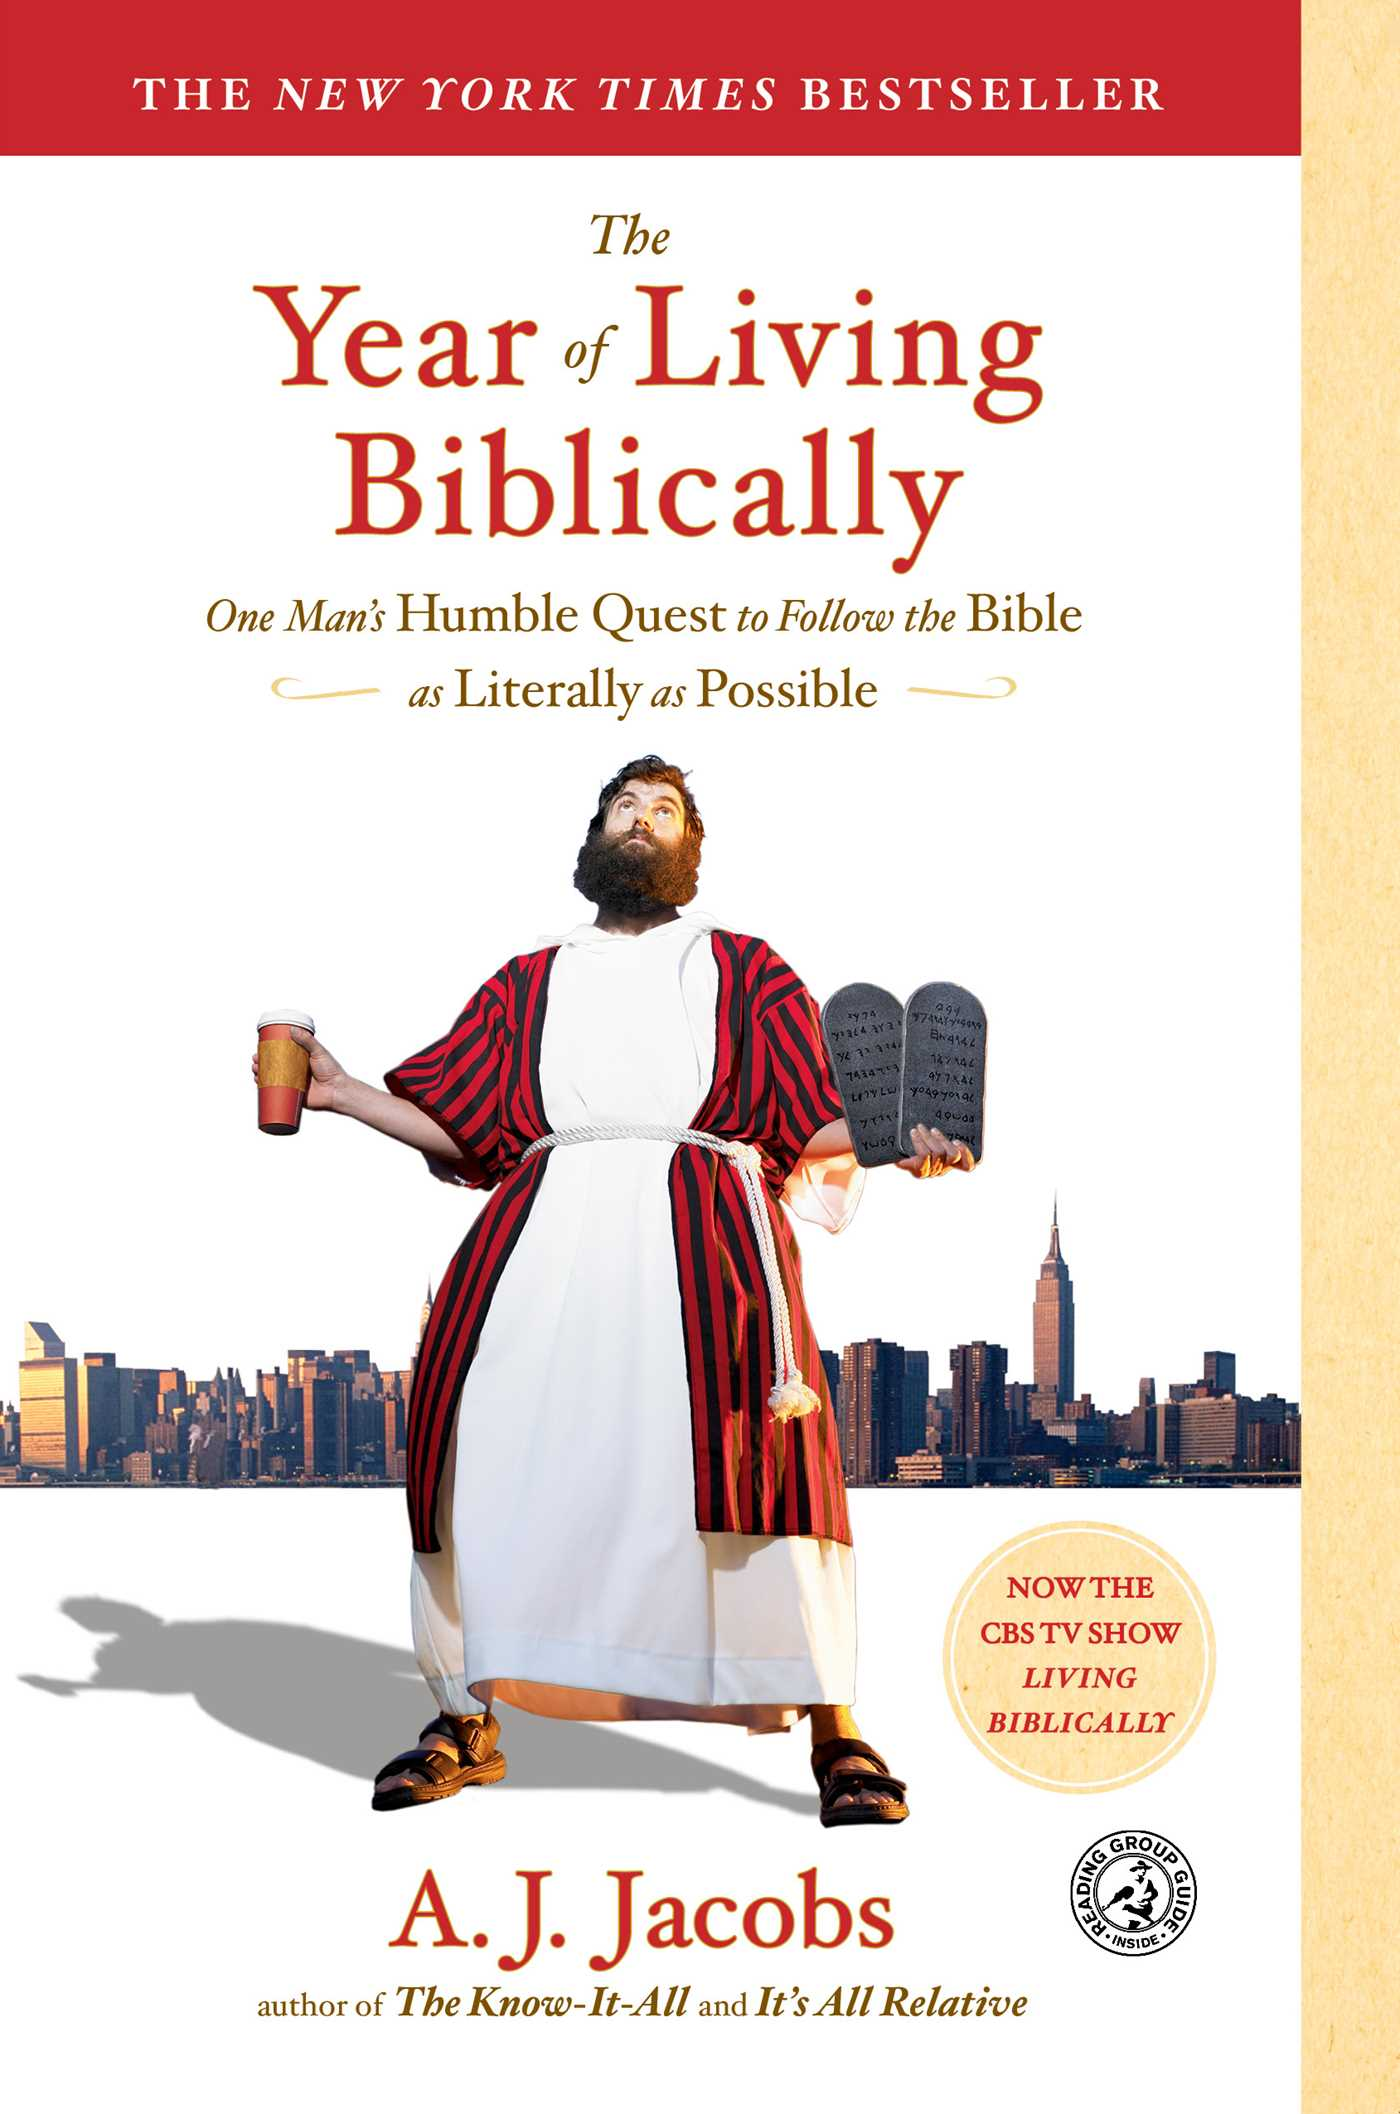 The year of living biblically 9780743291484 hr